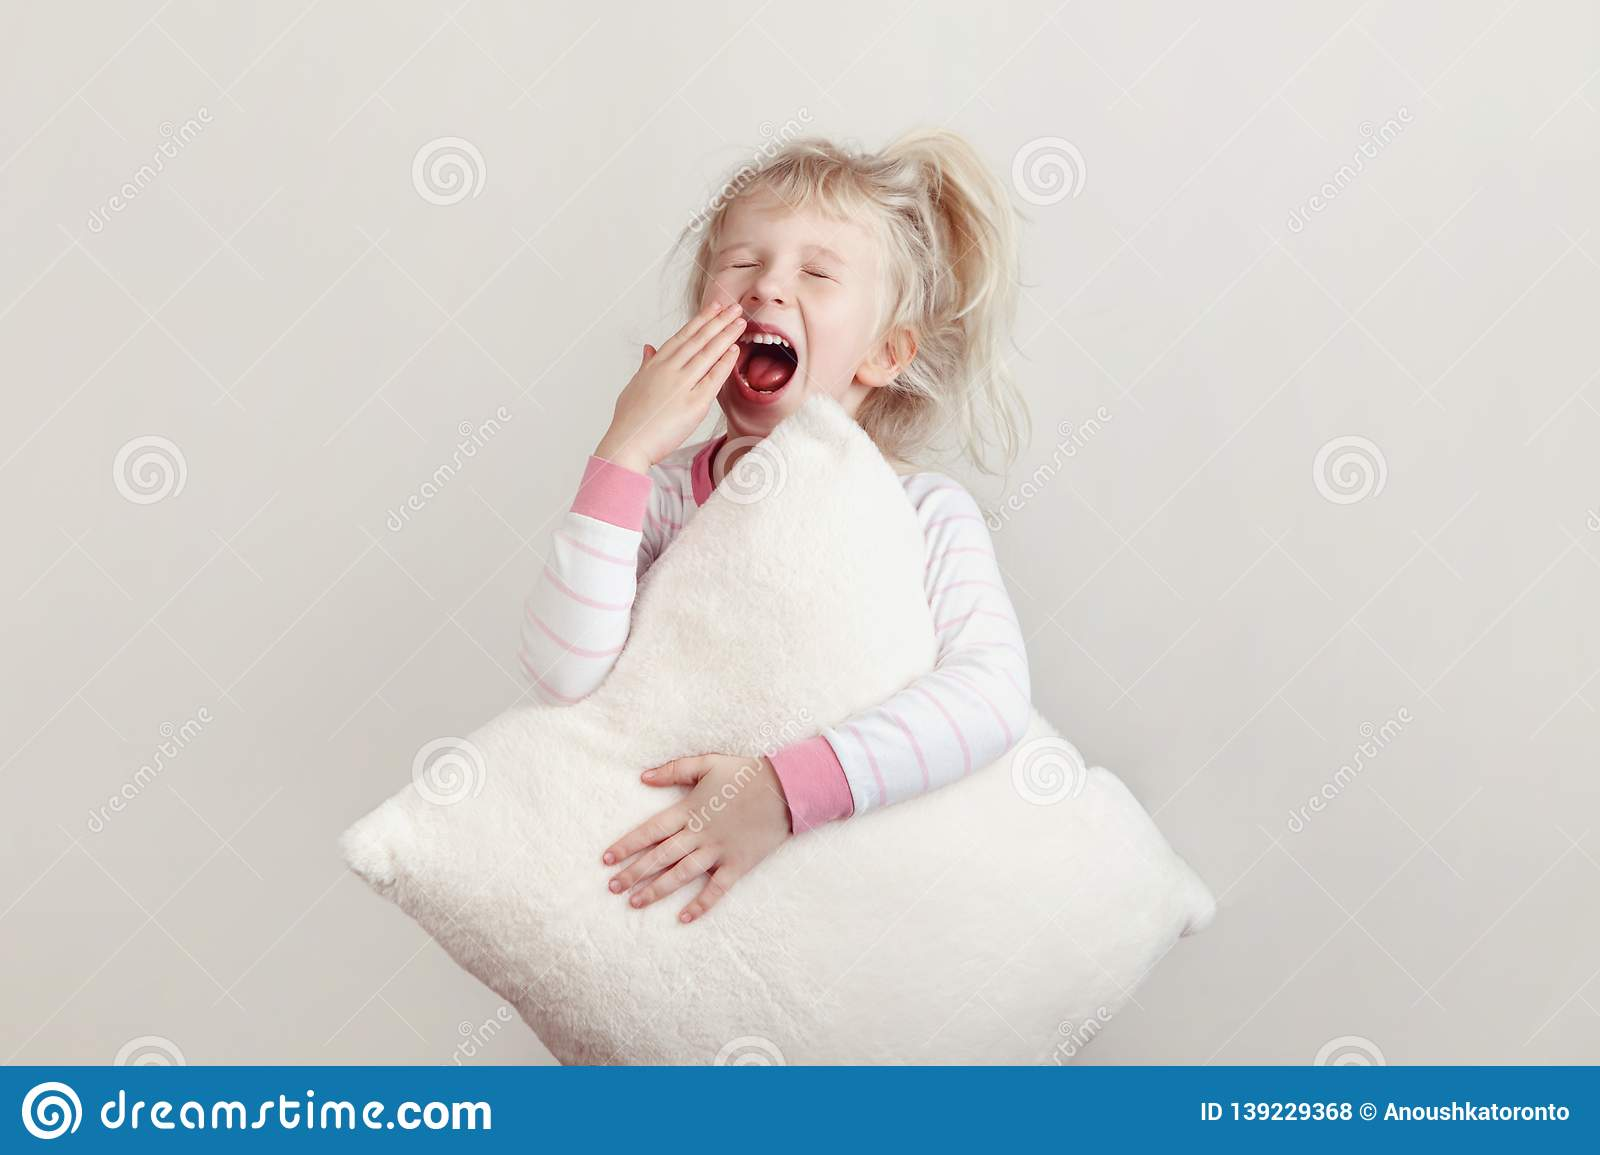 934cf1c072 Cute blonde Caucasian girl child in pink pajamas with closed eyes yawning  covering wide open mouth with palm. Sleepy kid with messy hair holding  white soft ...